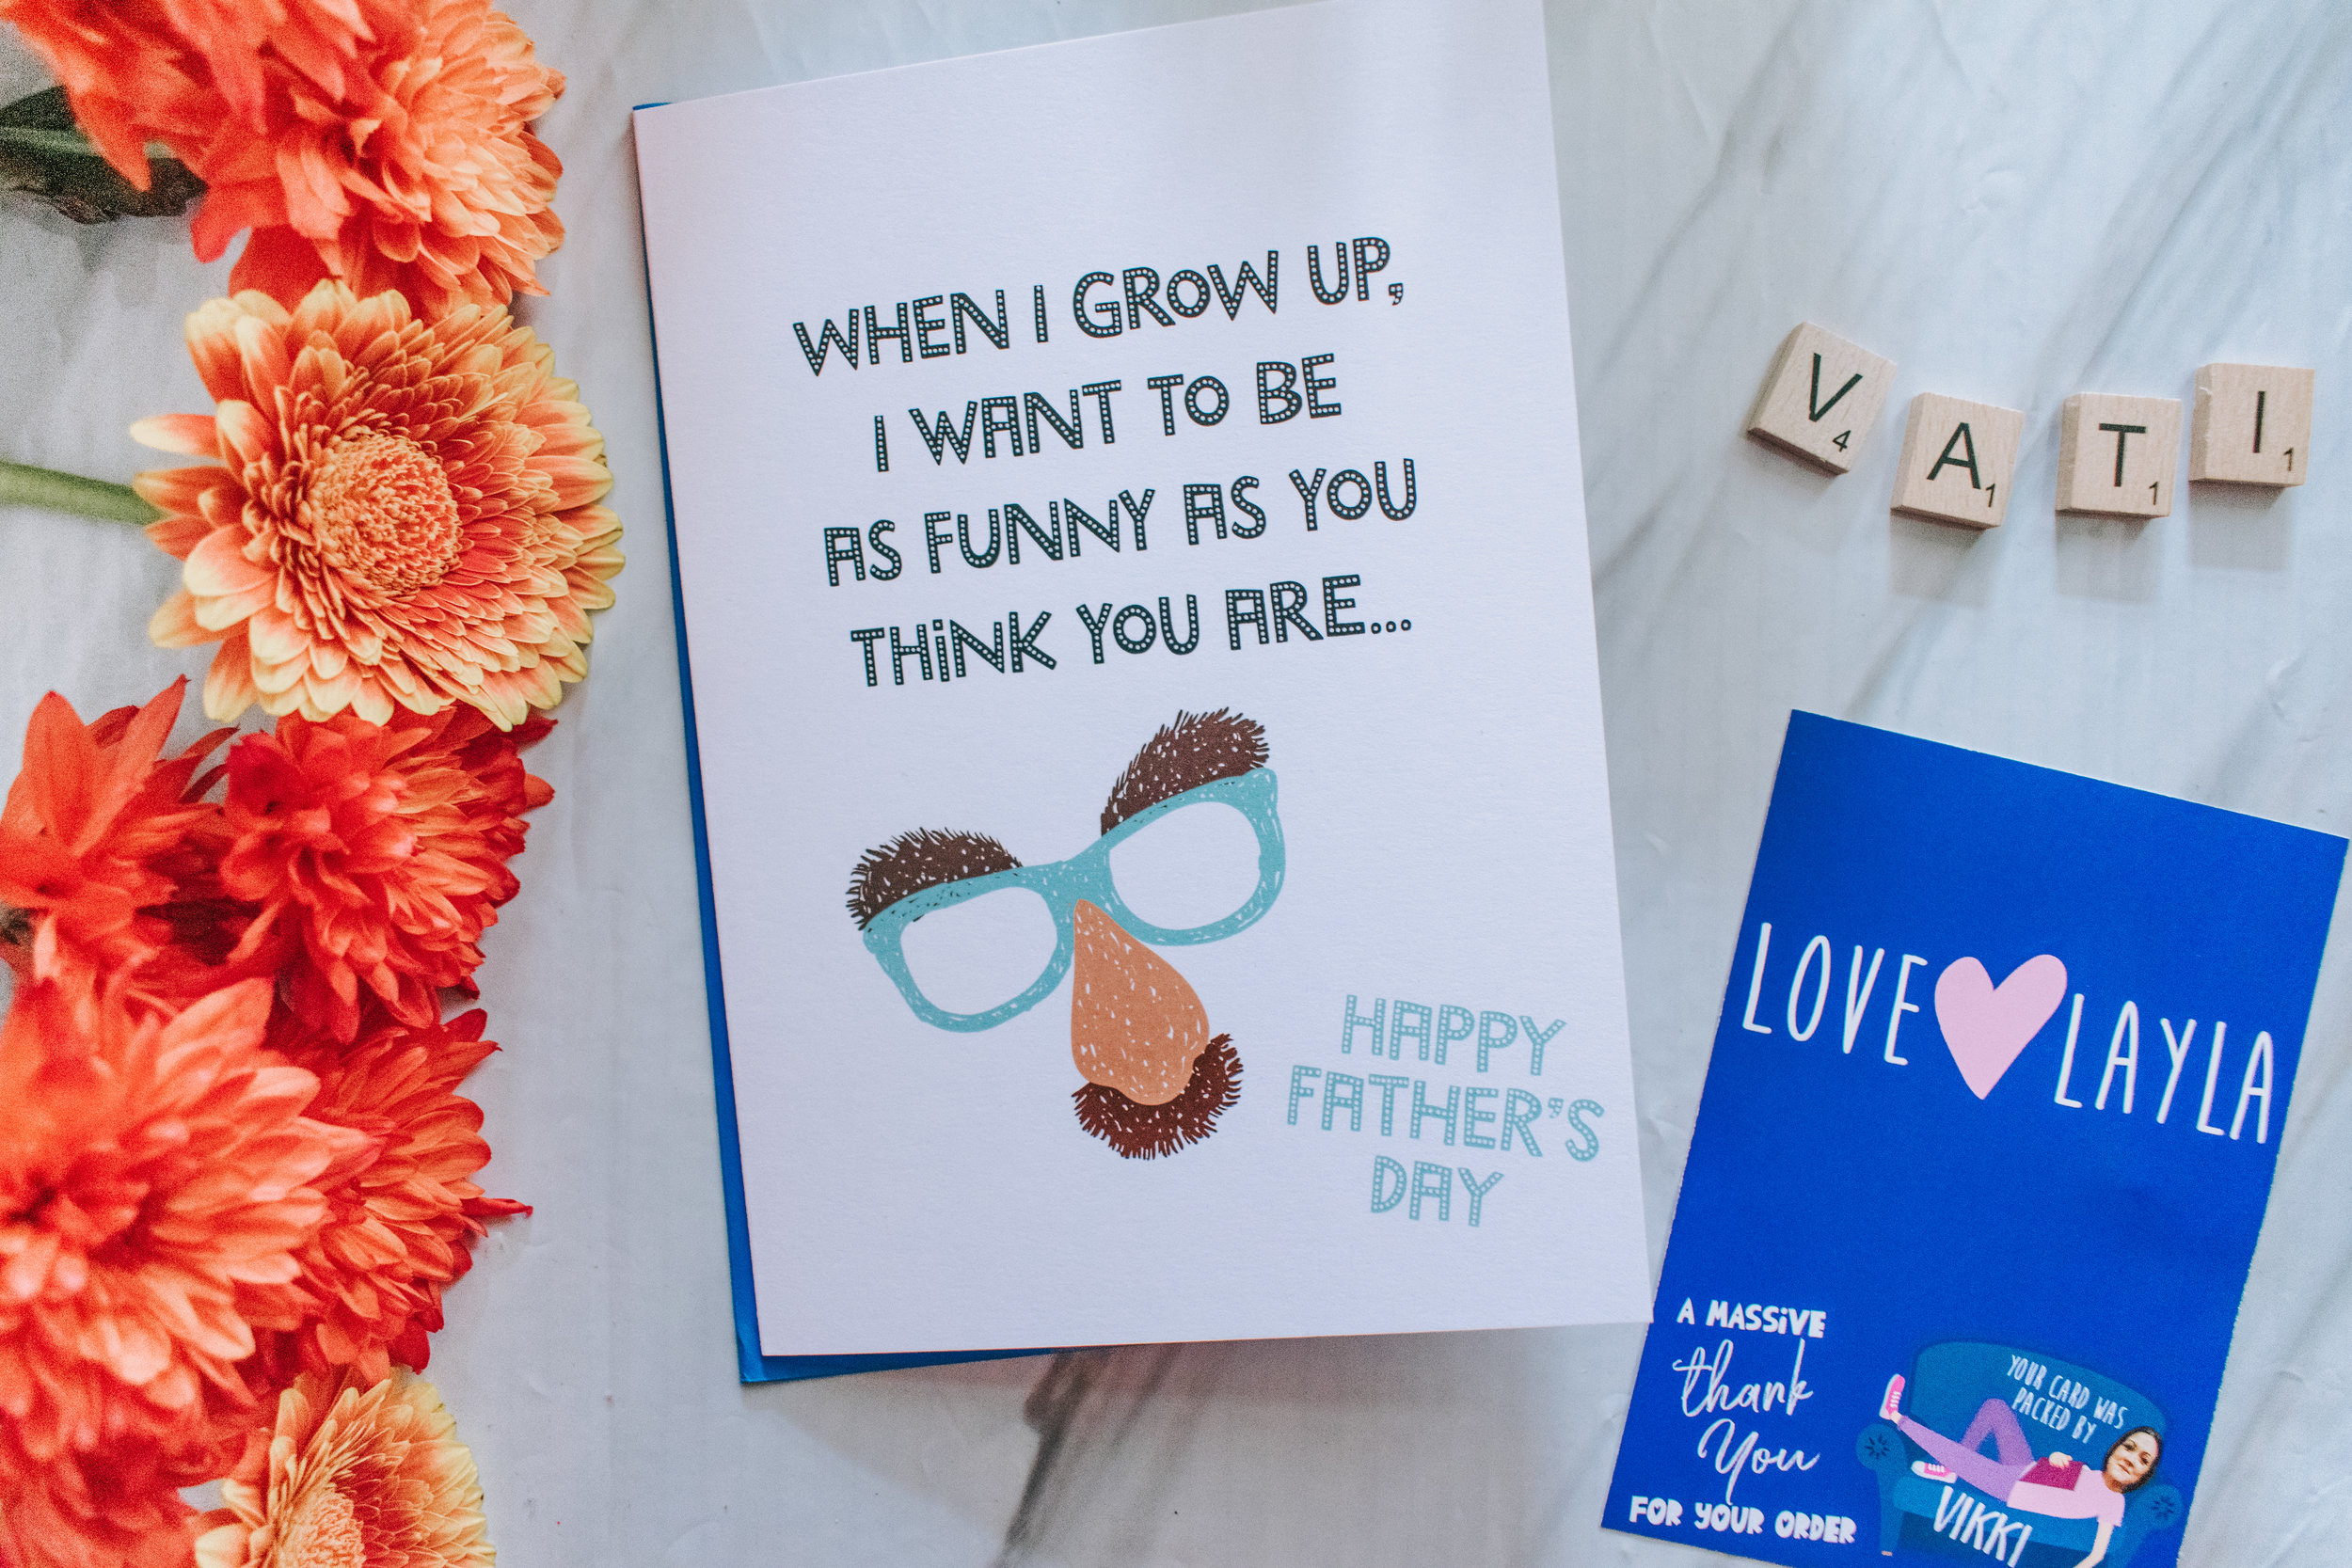 Love Layla funny as dad Father's Day card.jpeg